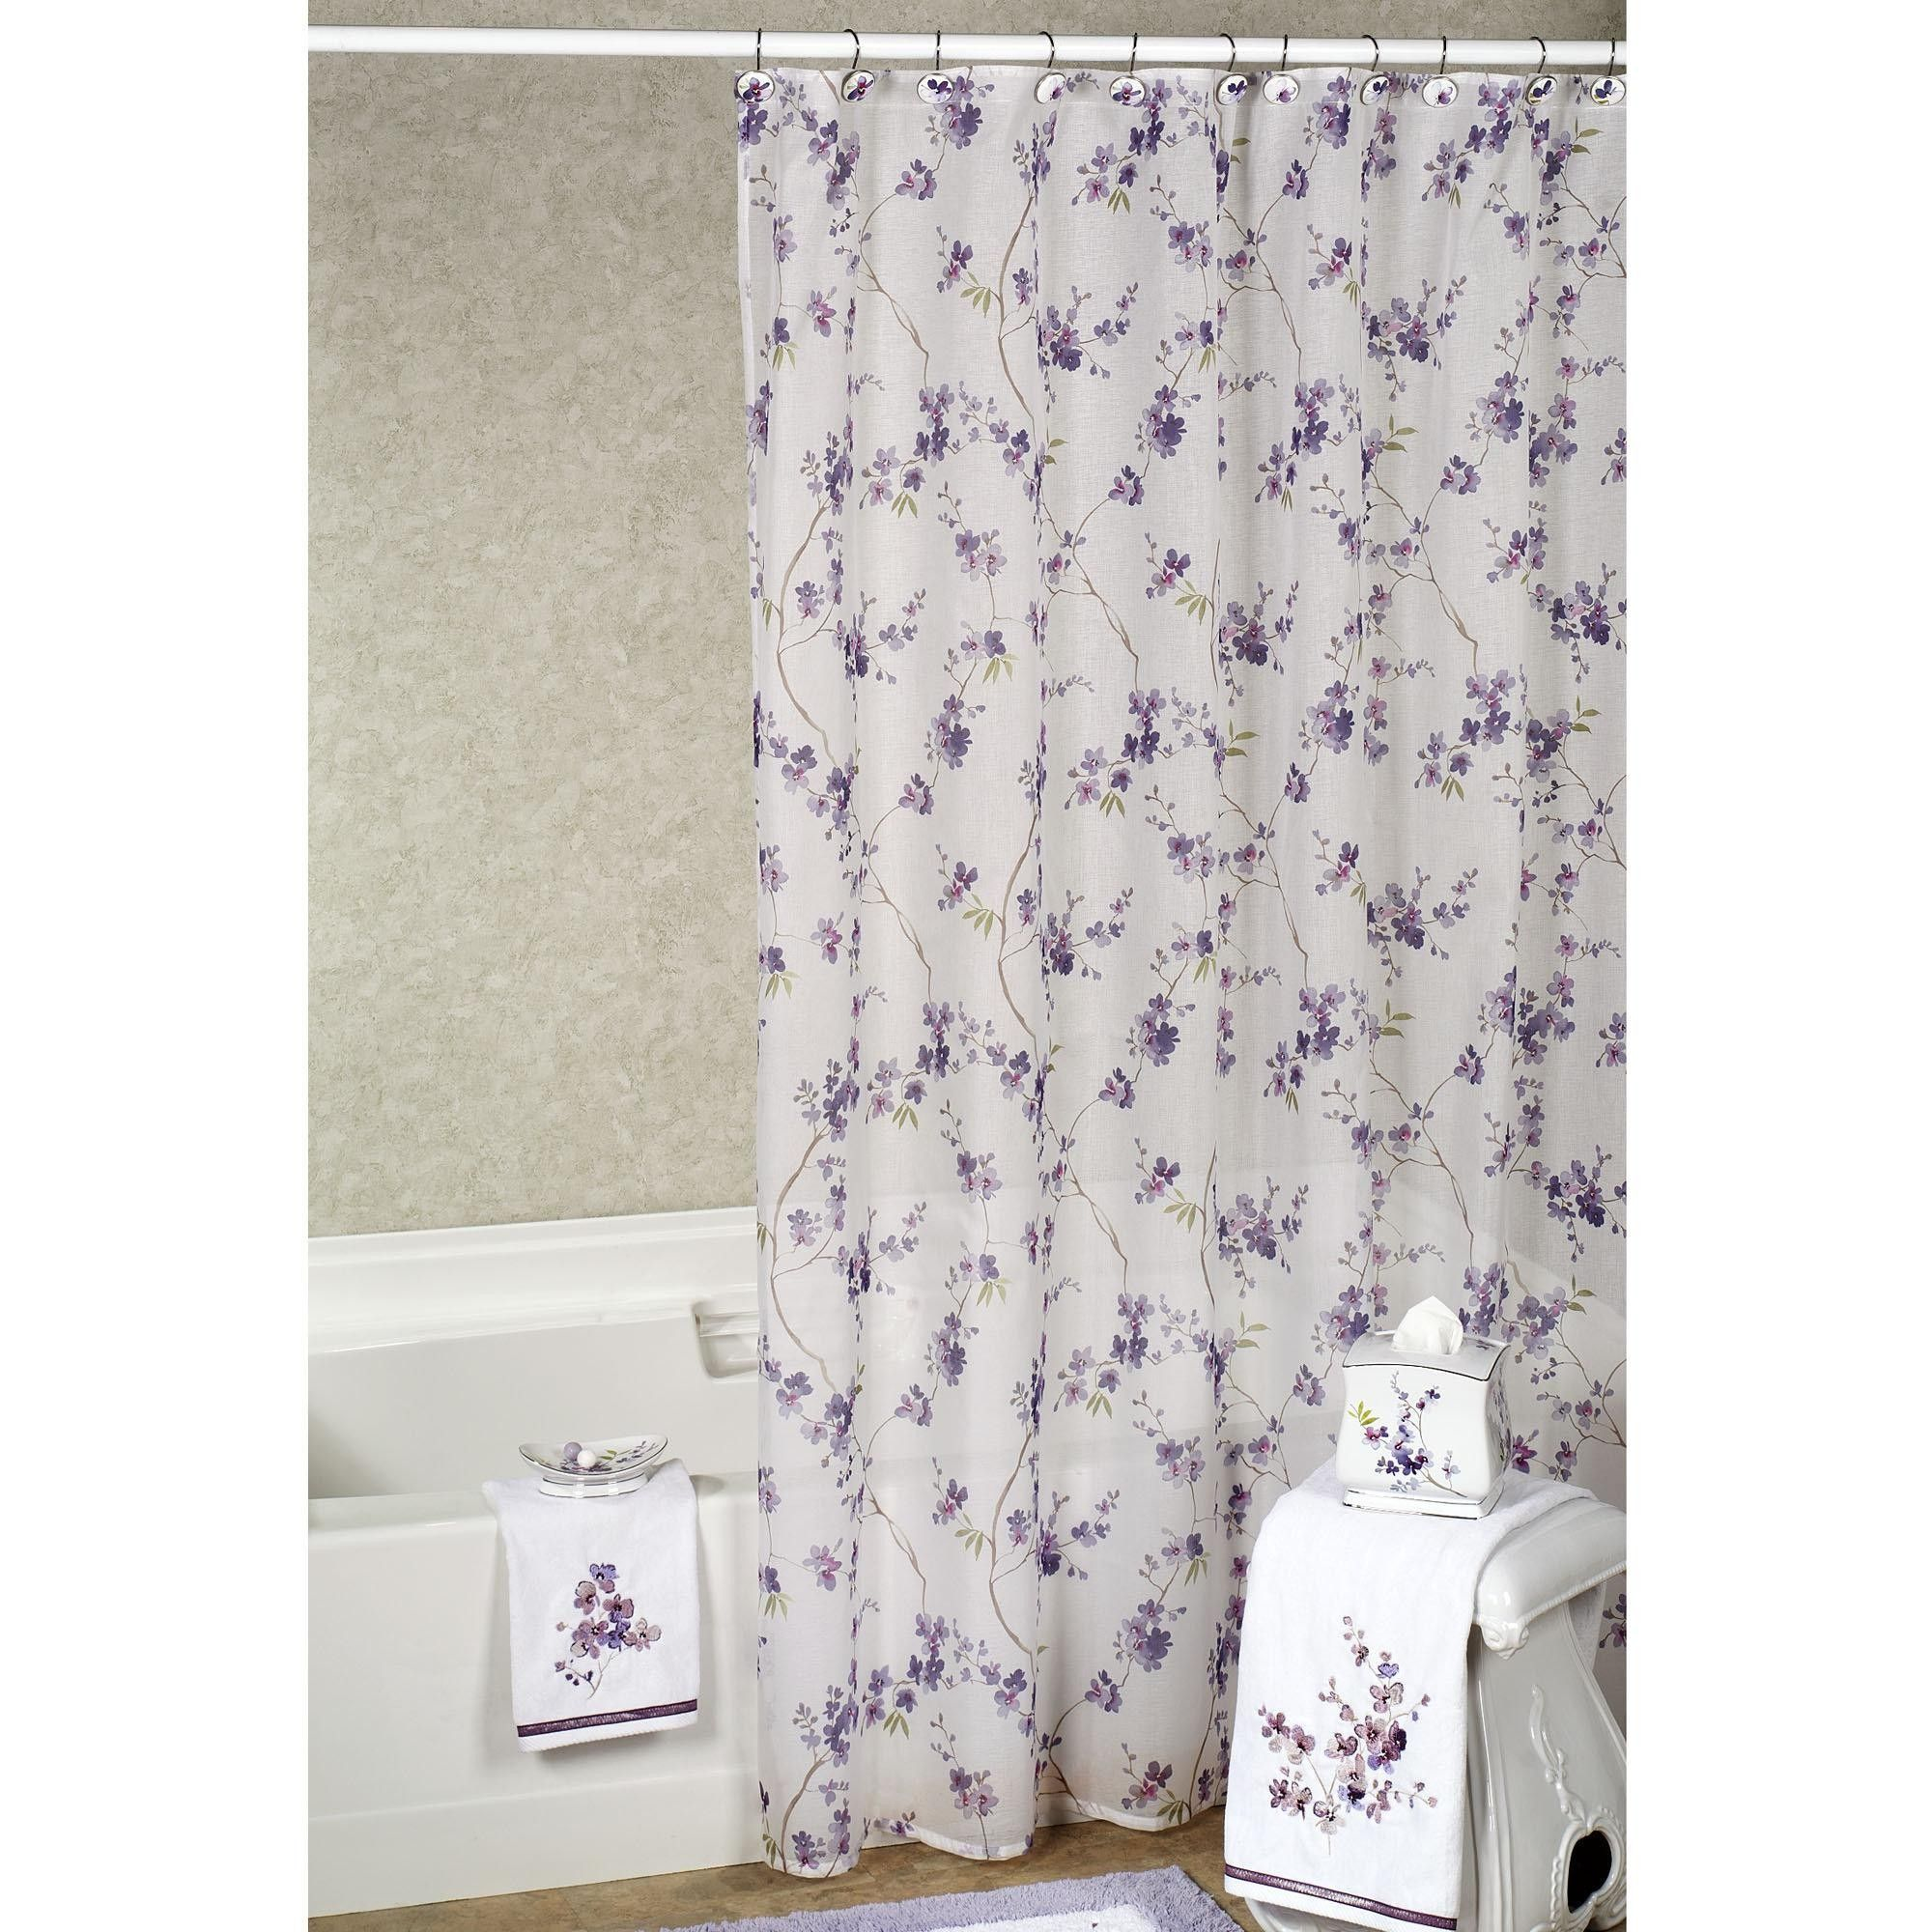 You Searched For Faucet Purple Shower Curtain Lavender Shower